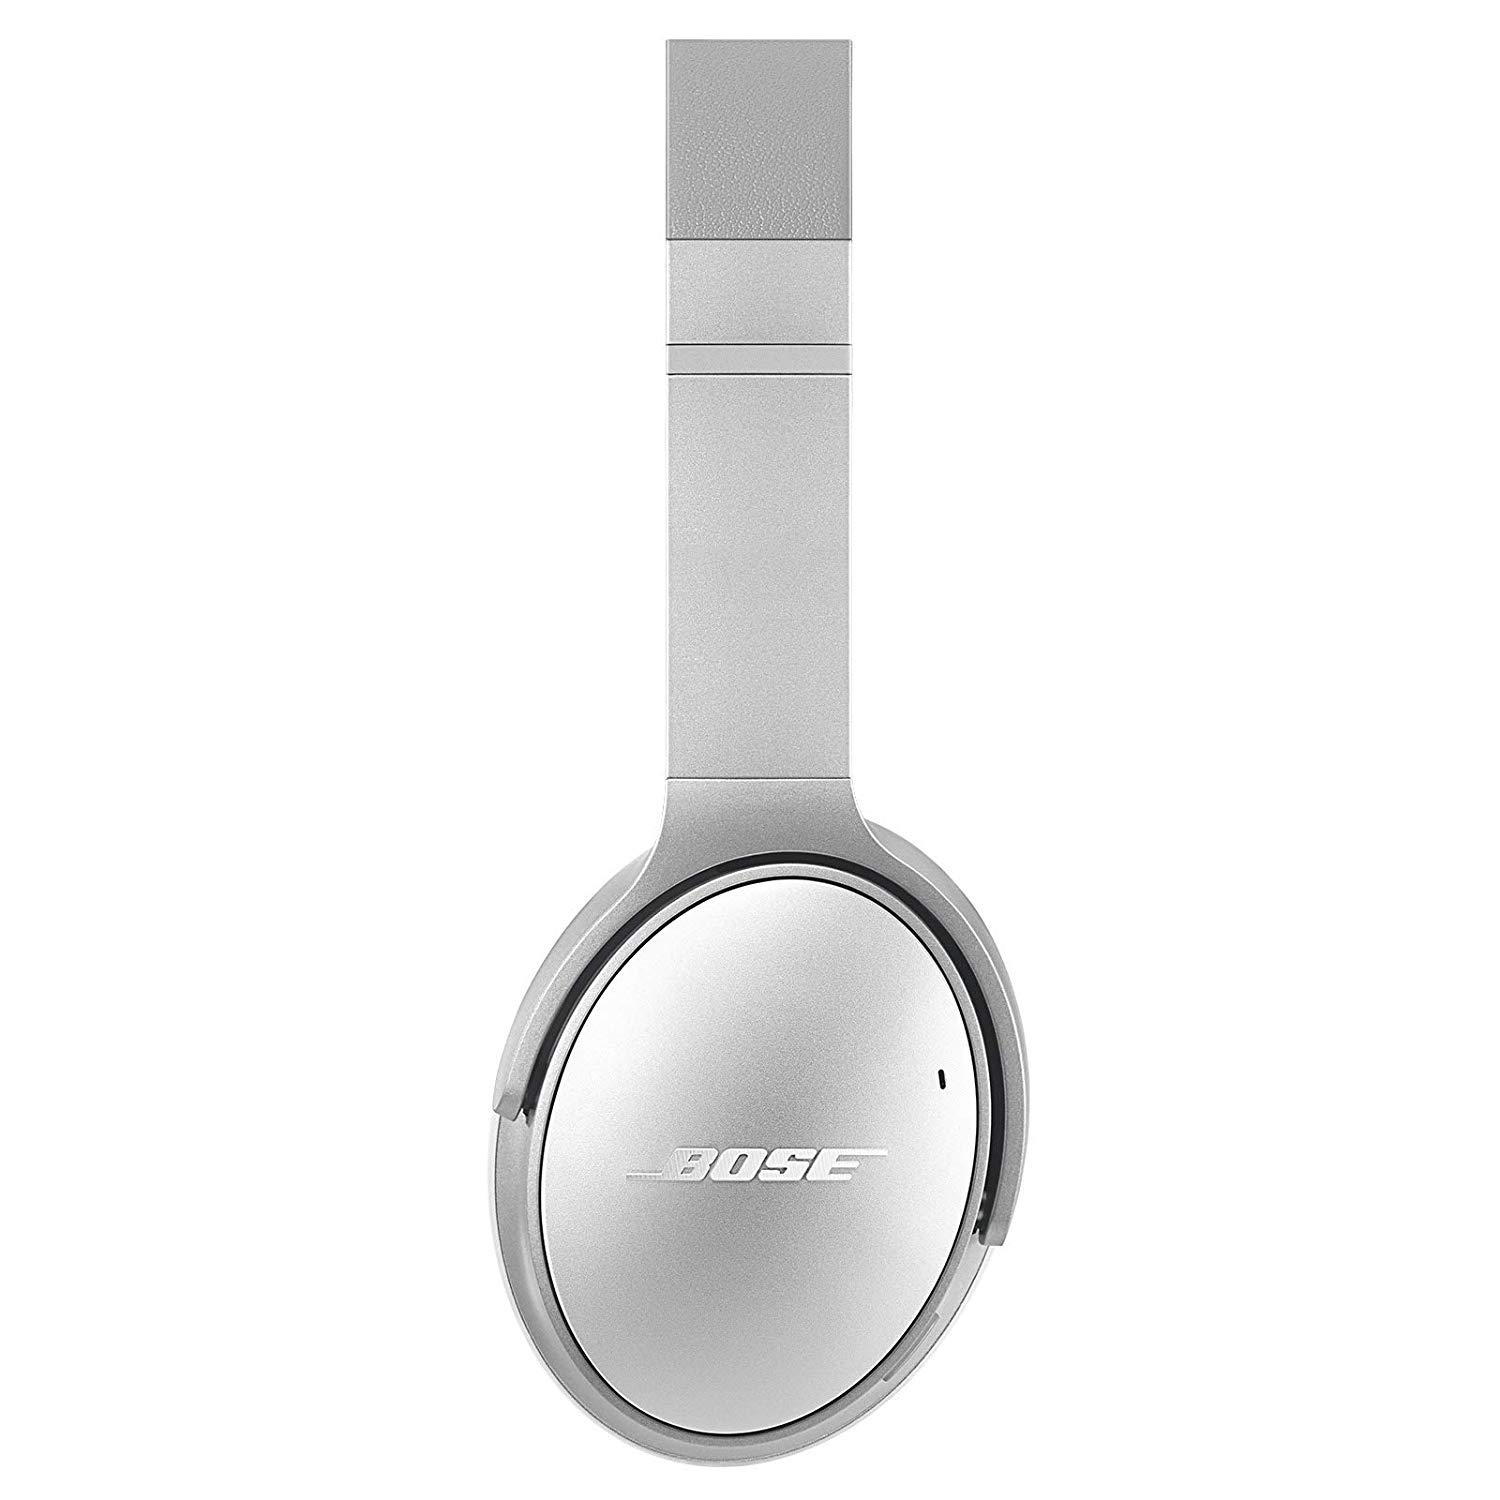 Bose QuietComfort 35 (Series II) Wireless Headphones, Noise Cancelling, with Alexa Voice Control - Silver + 1 Year Extended Warranty + Deco Gear 6.35mm to 3.5mm Adaptor Value Bundle by Bose